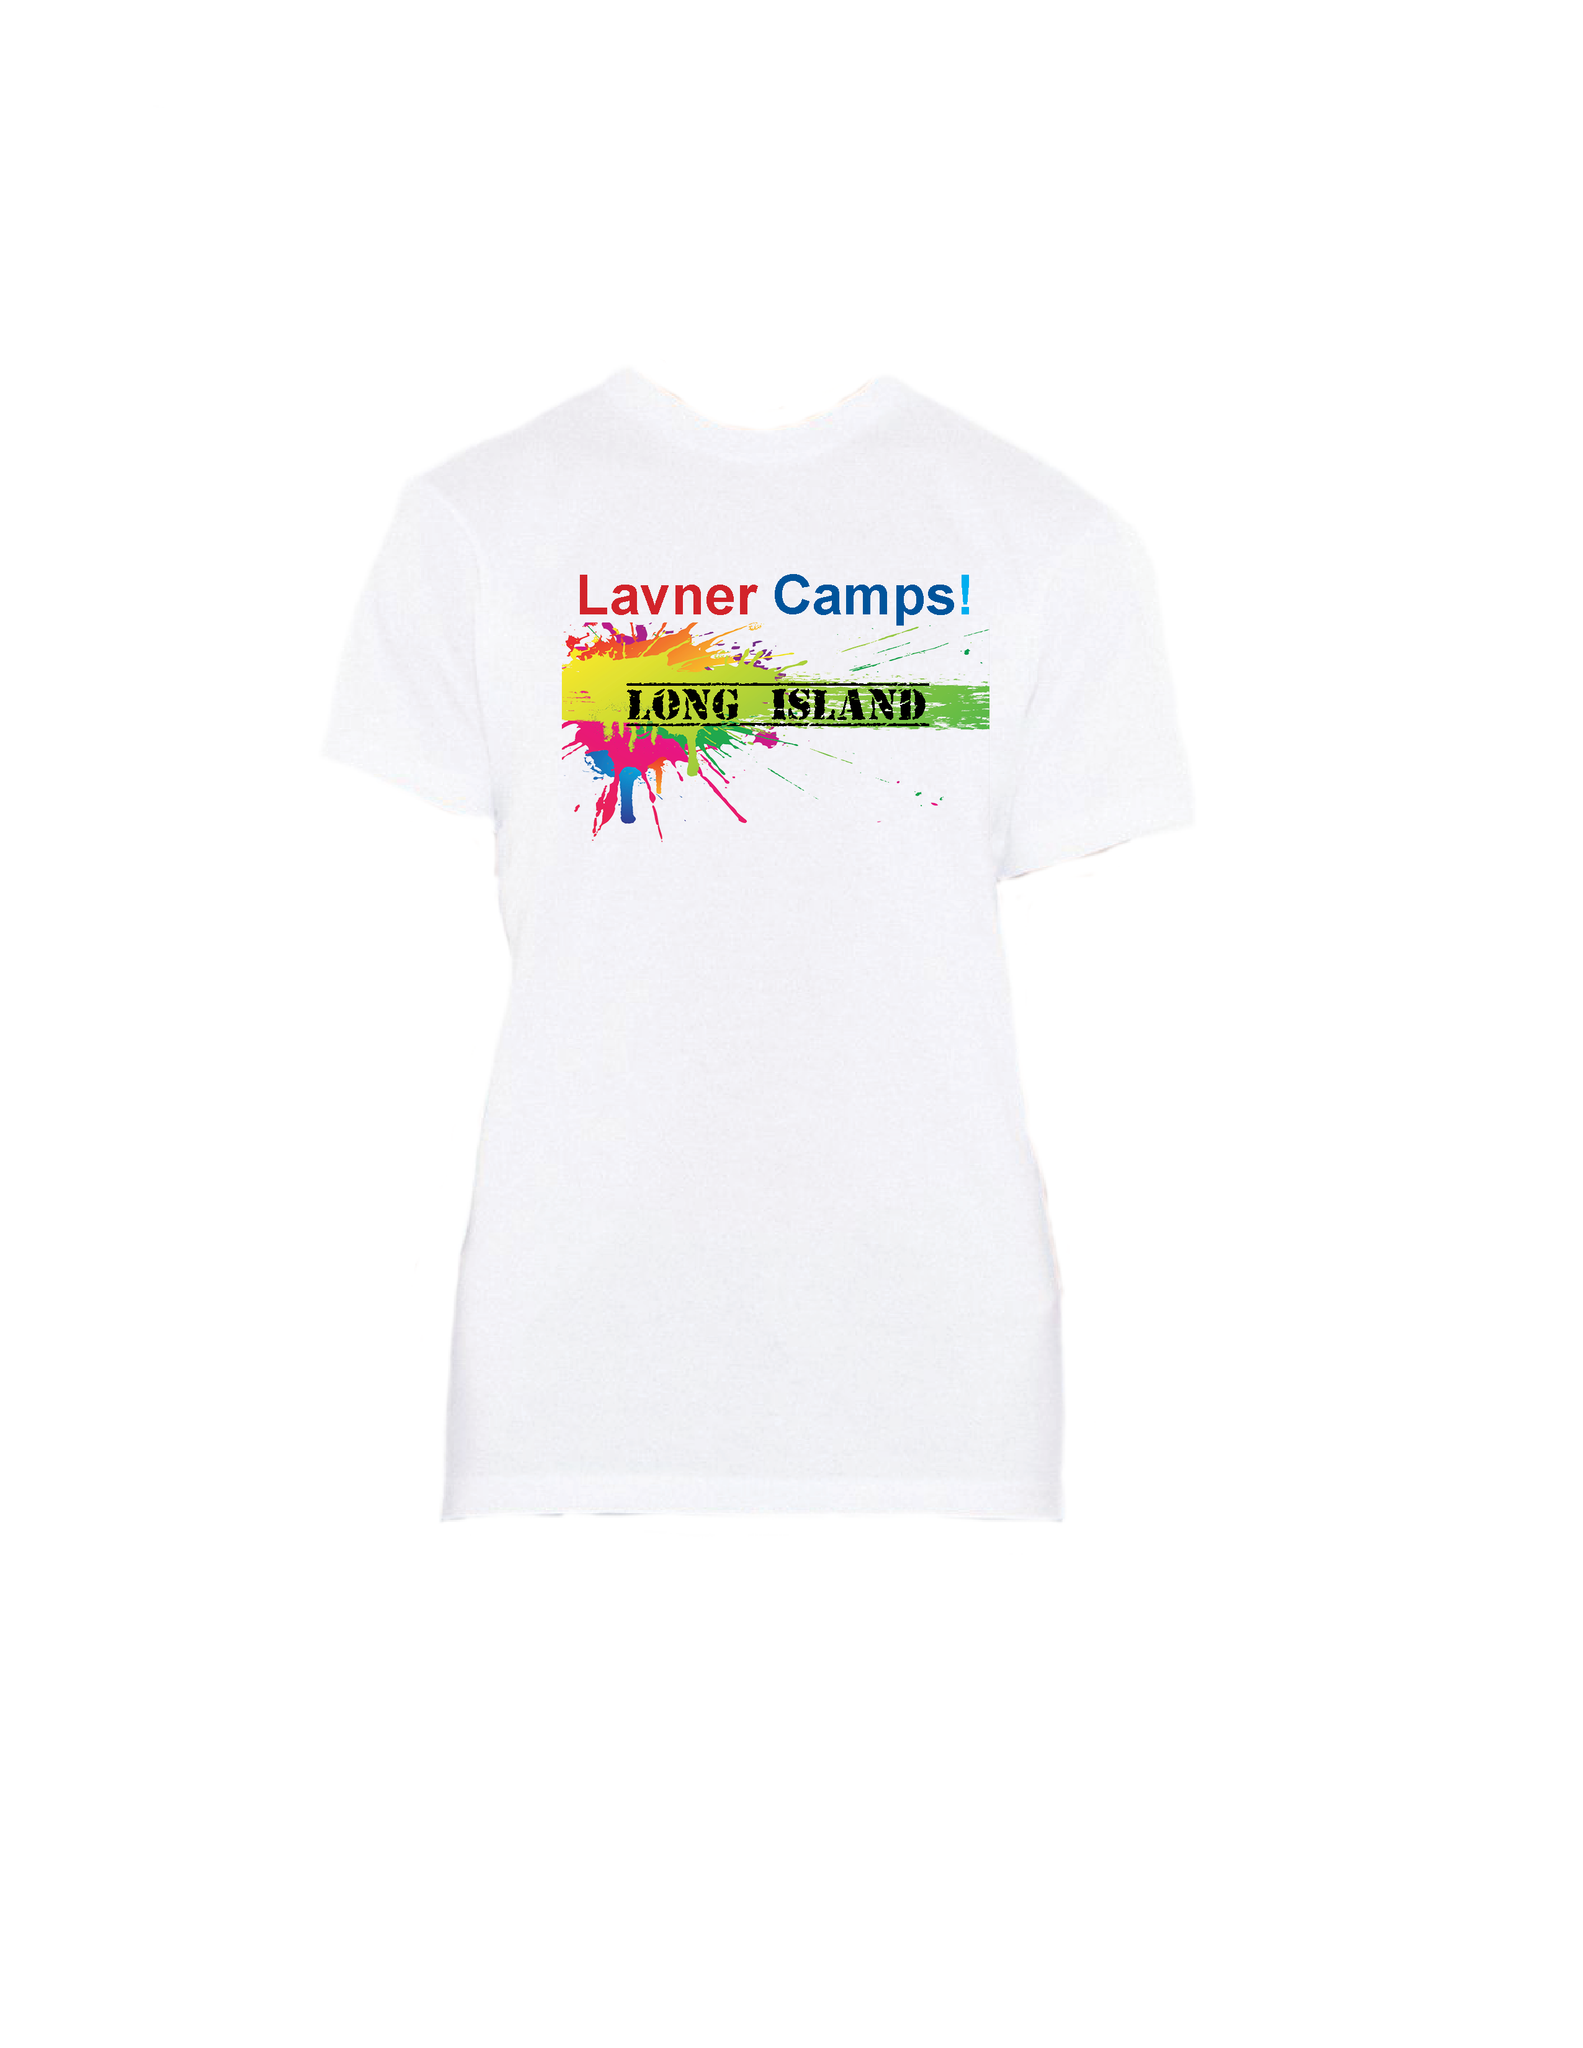 Long Island T-Shirt (Youth)